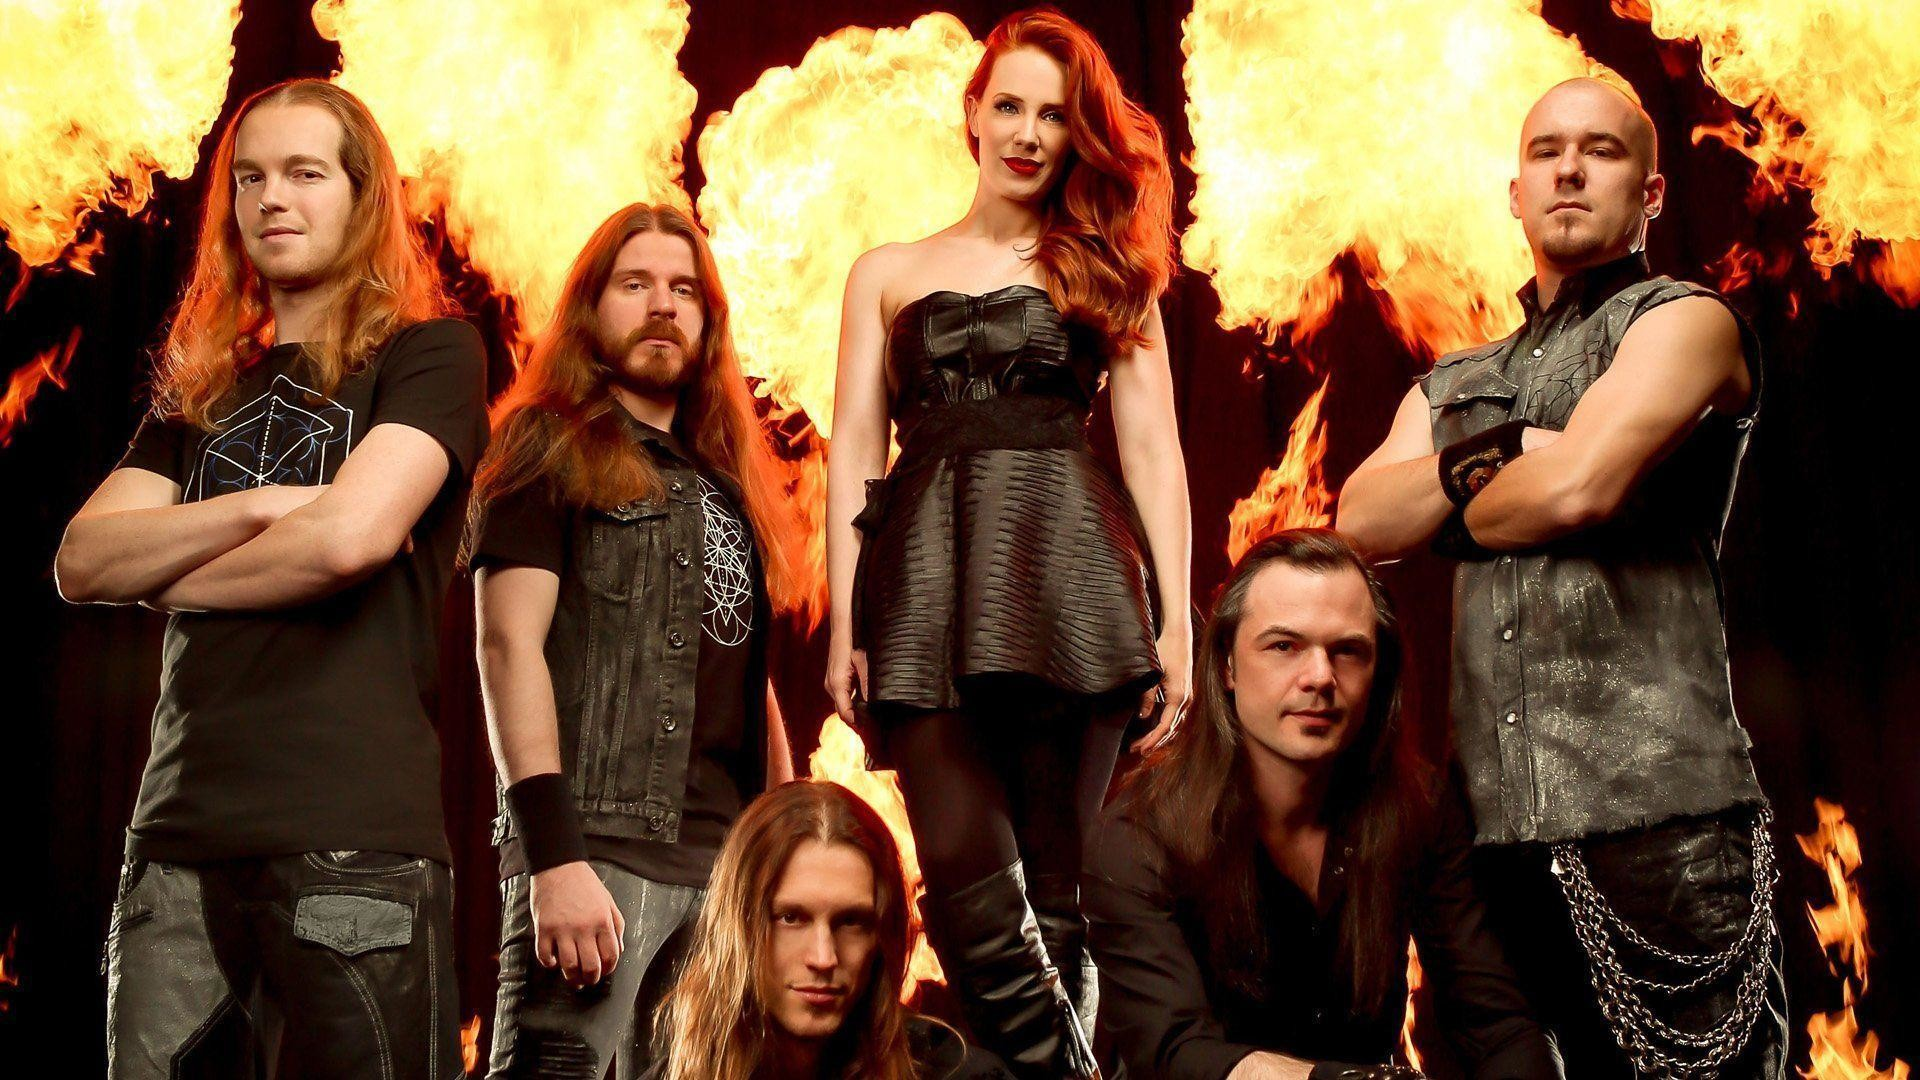 1920x1080 Best Epica Wallpapers, Epica  px Pictures by Jerald Marotta